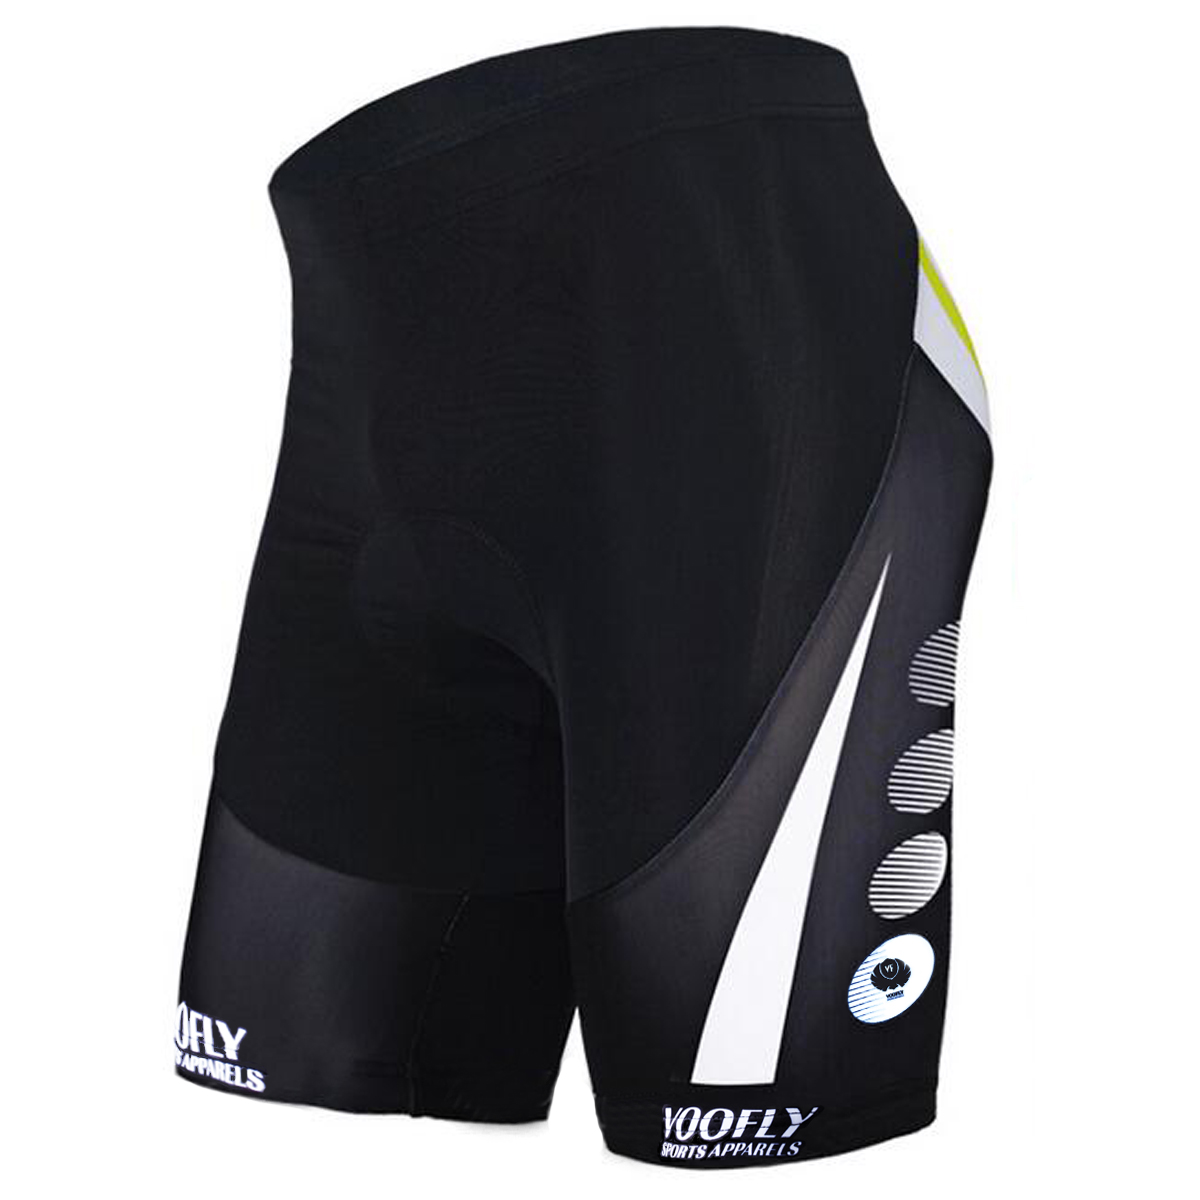 Details about Cycling Shorts Padded for Men Cycle MTB Bicycle Spin Tihgts  Road Cycle 1 2 Pants 3084b2fd6